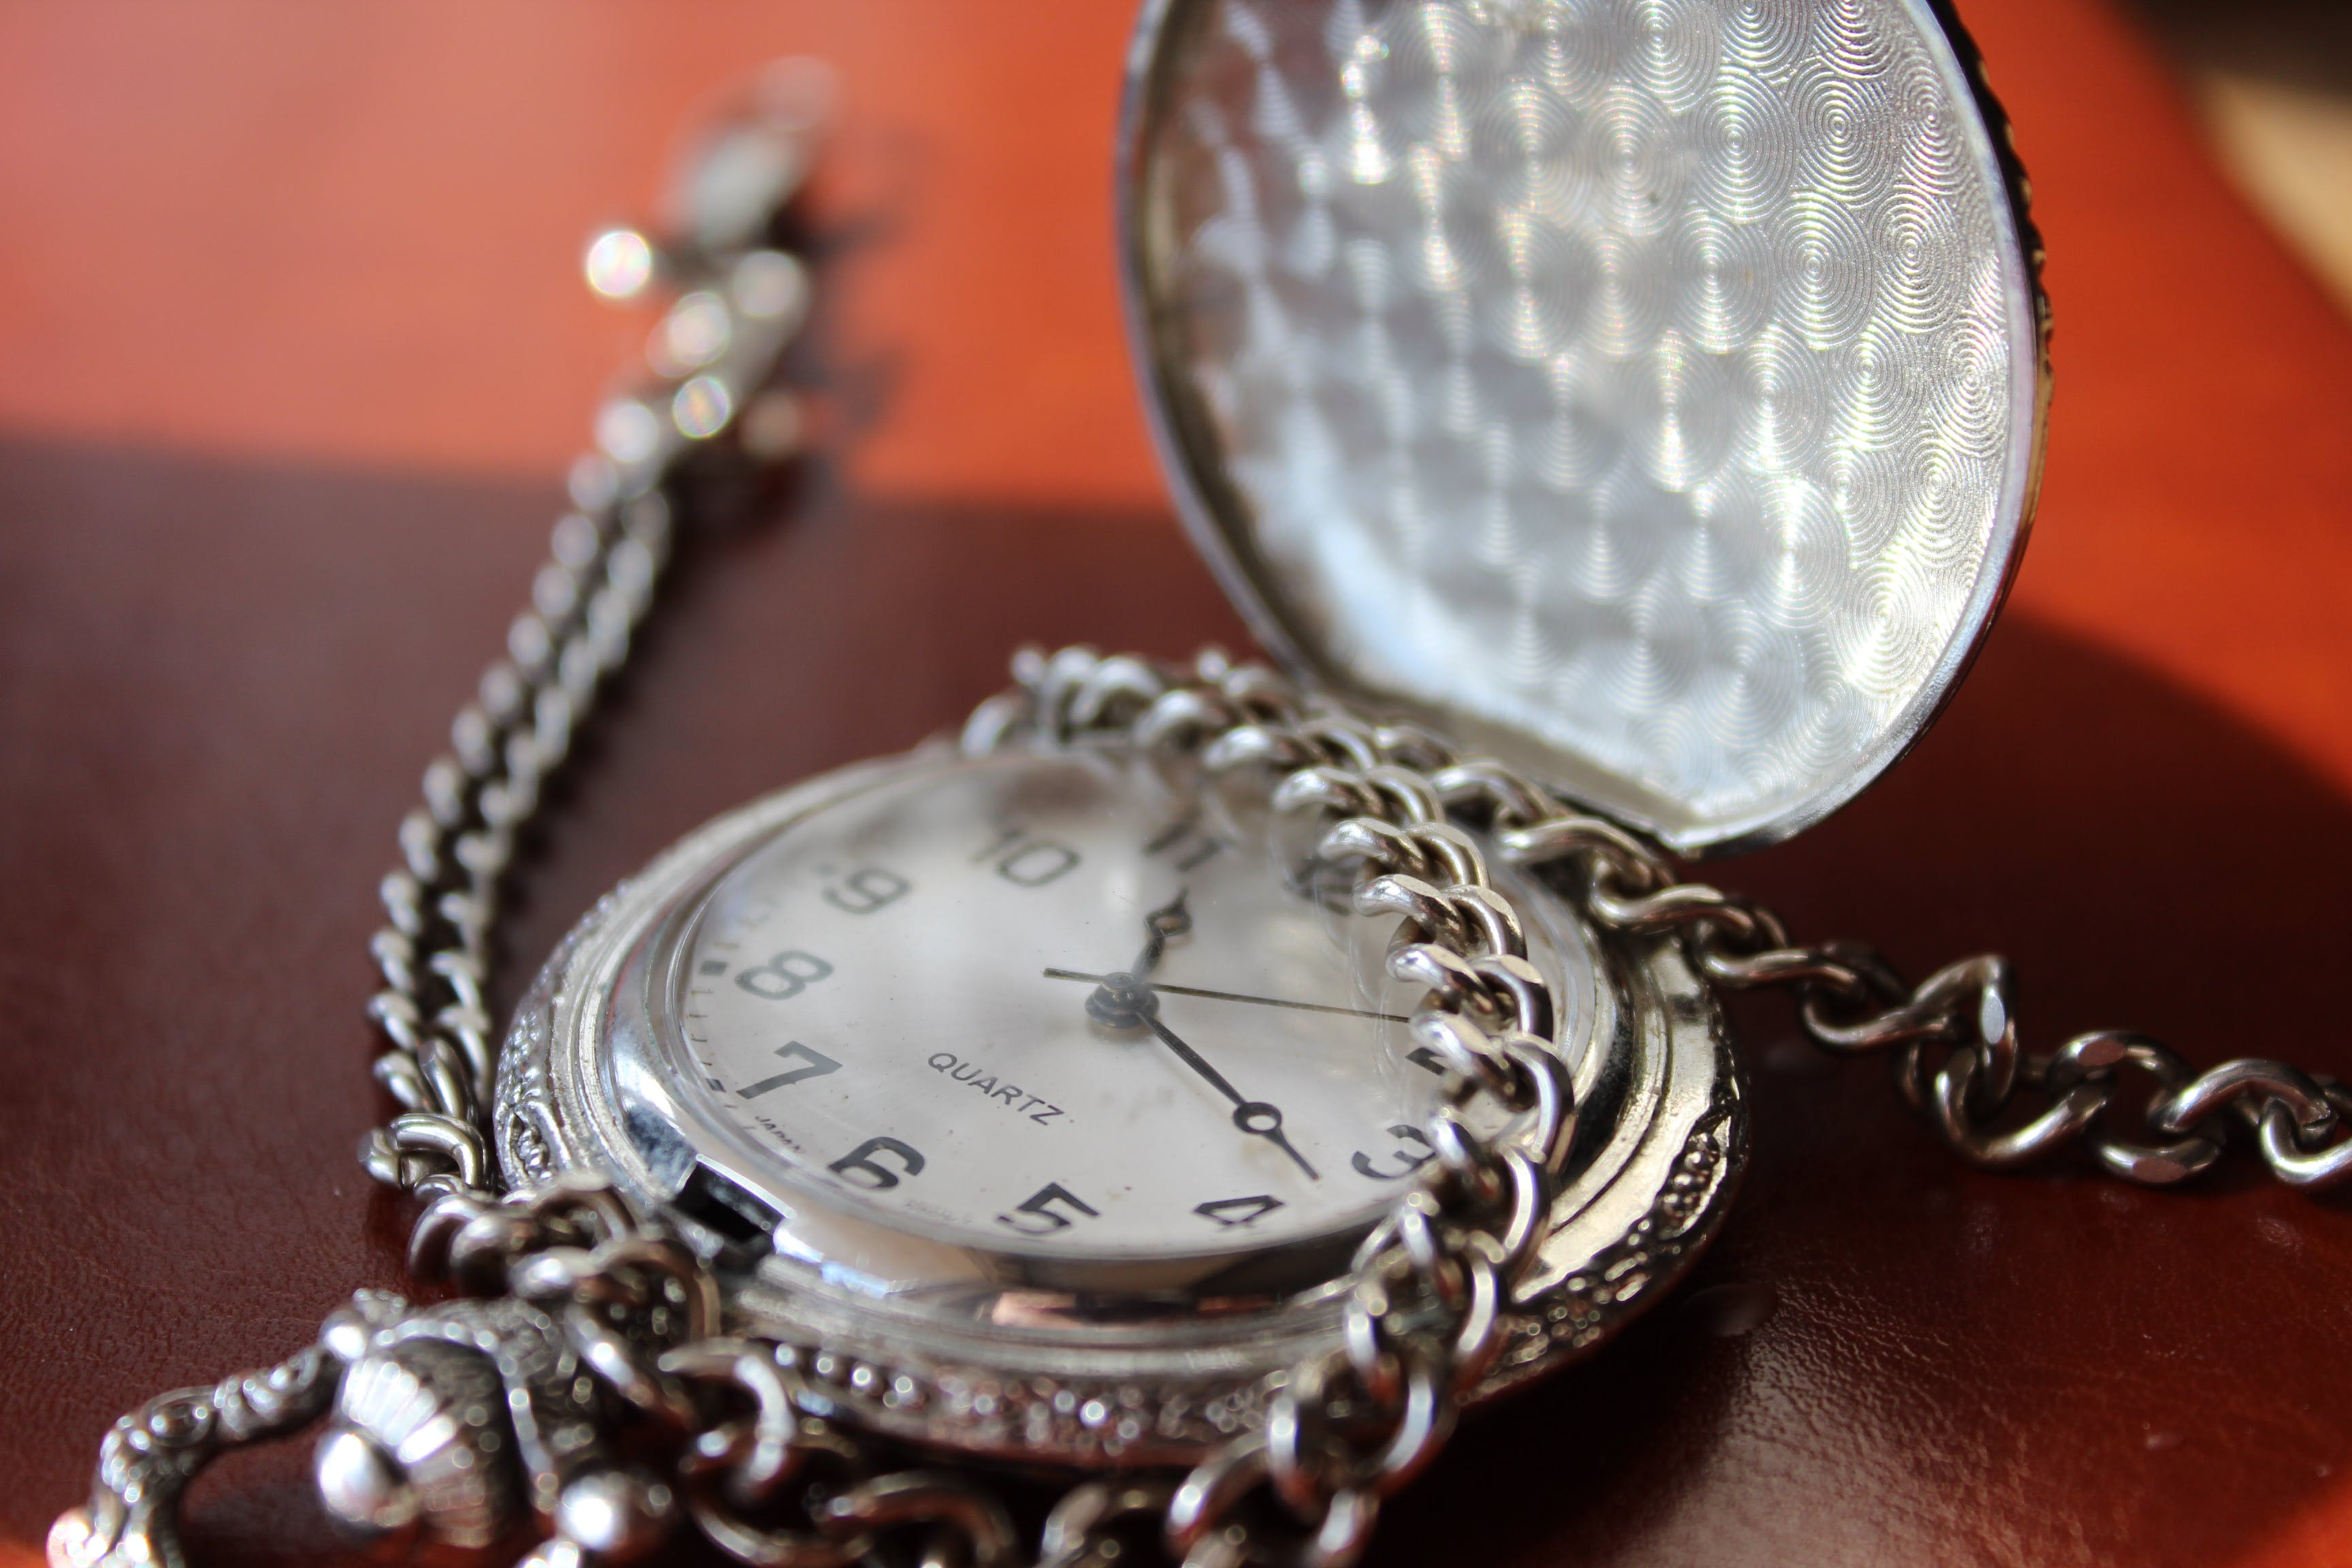 Round Silver-colored Pocket Watch